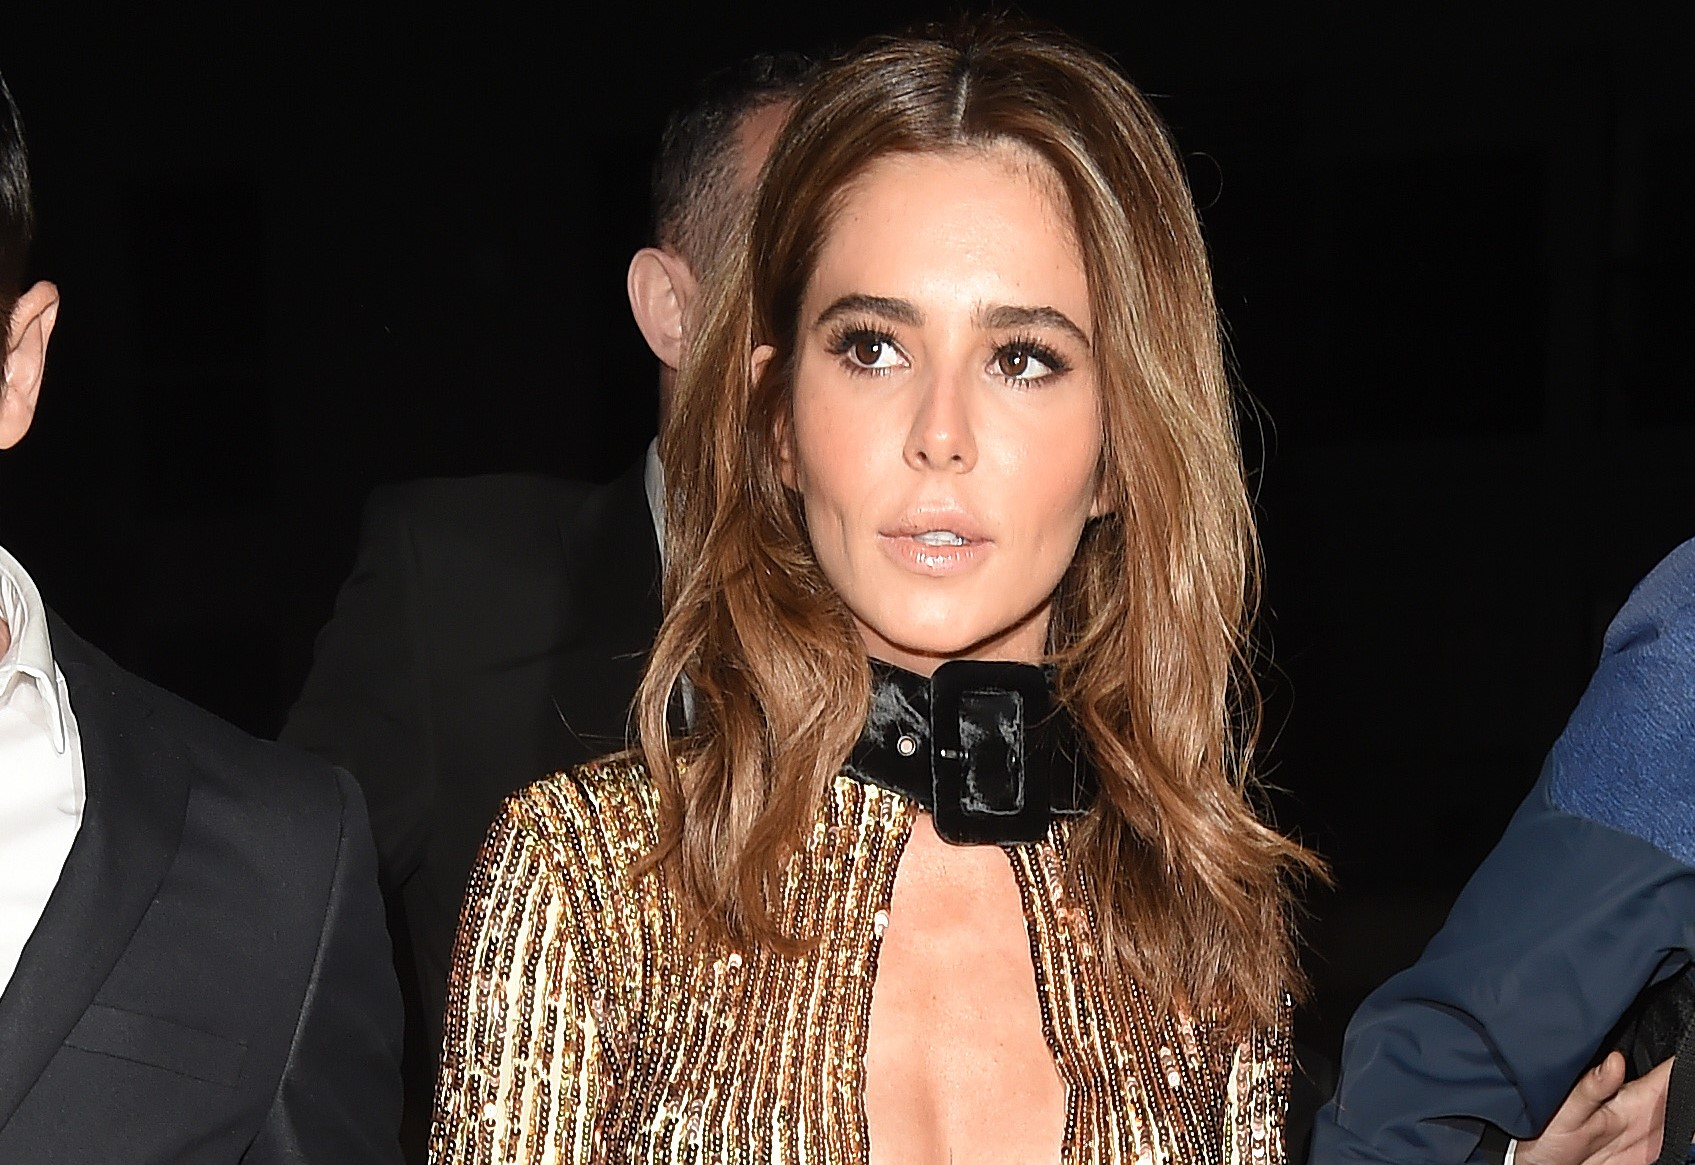 Fed-up Cheryl plans to make some big changes to her life after lockdown